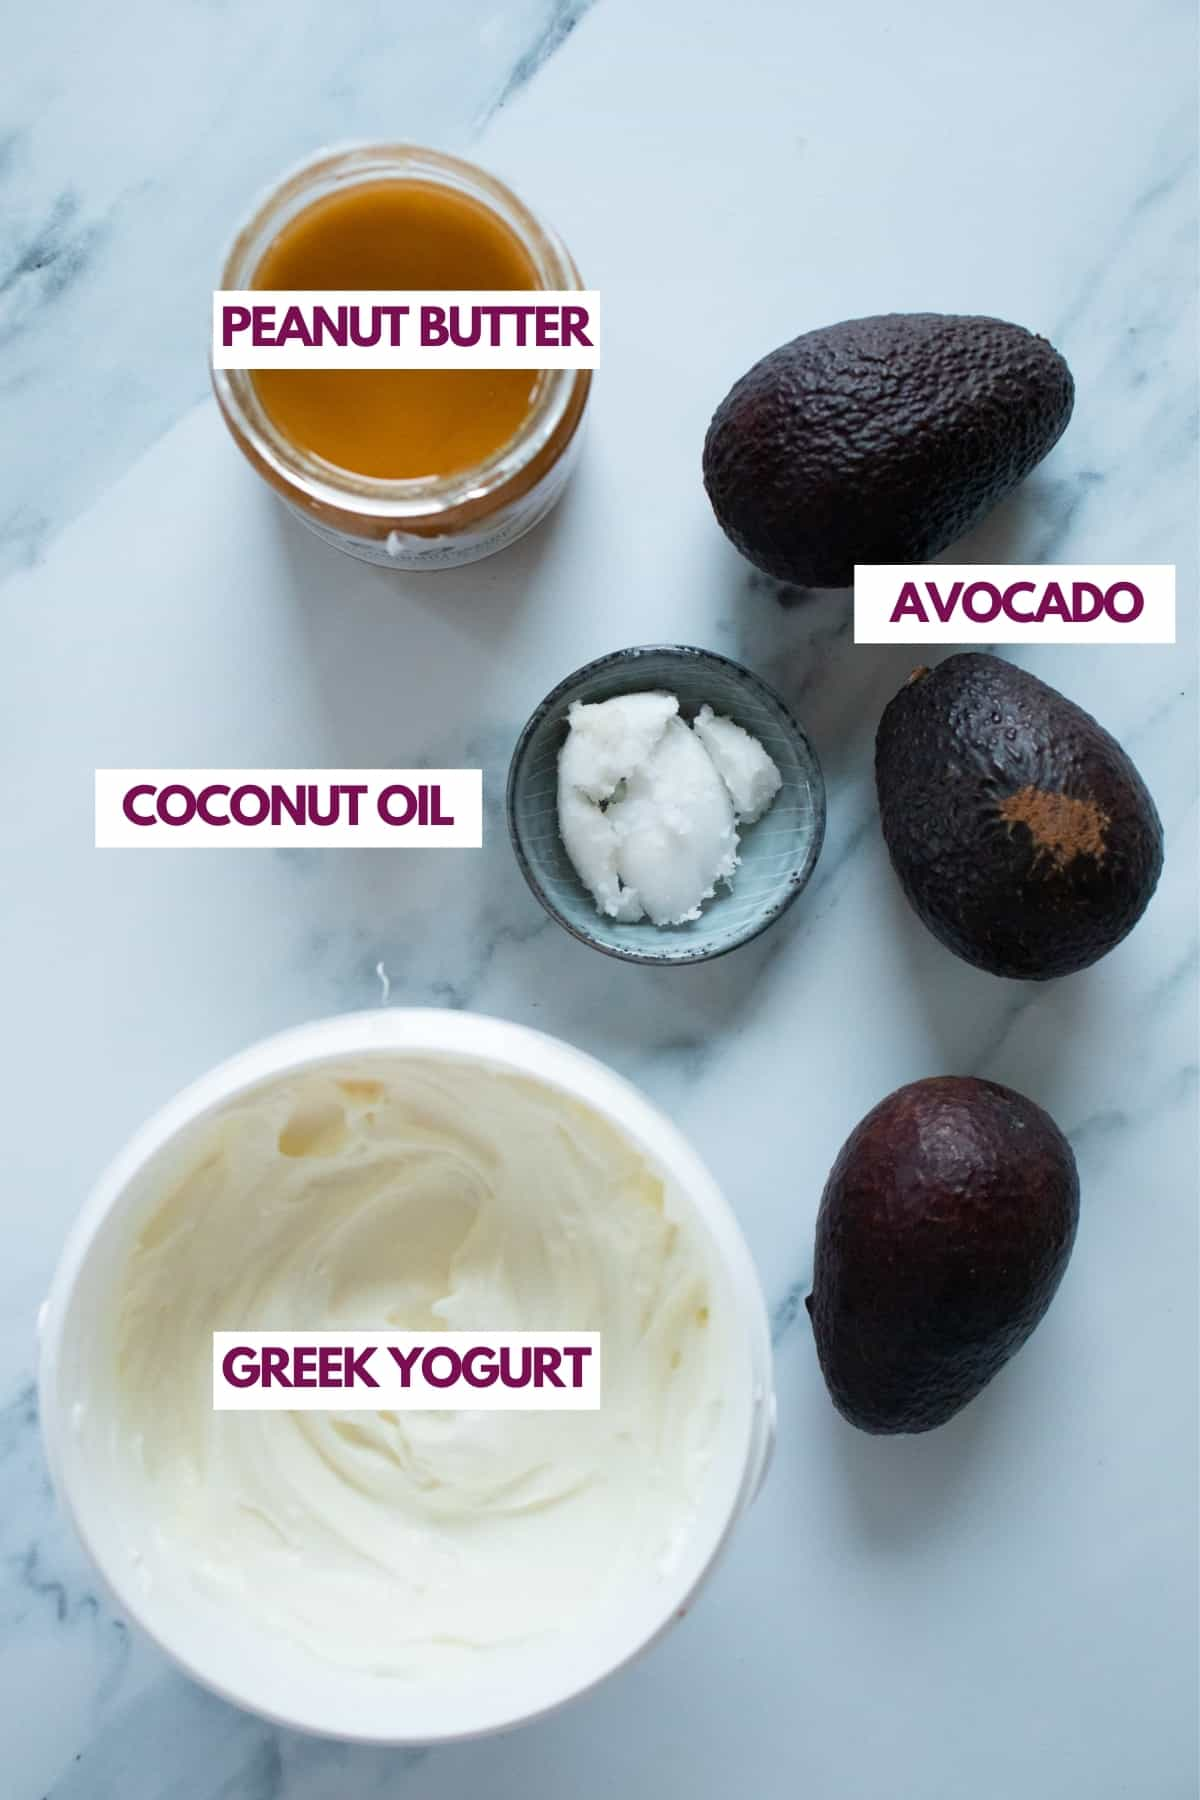 ingredients to add fat to smoothies